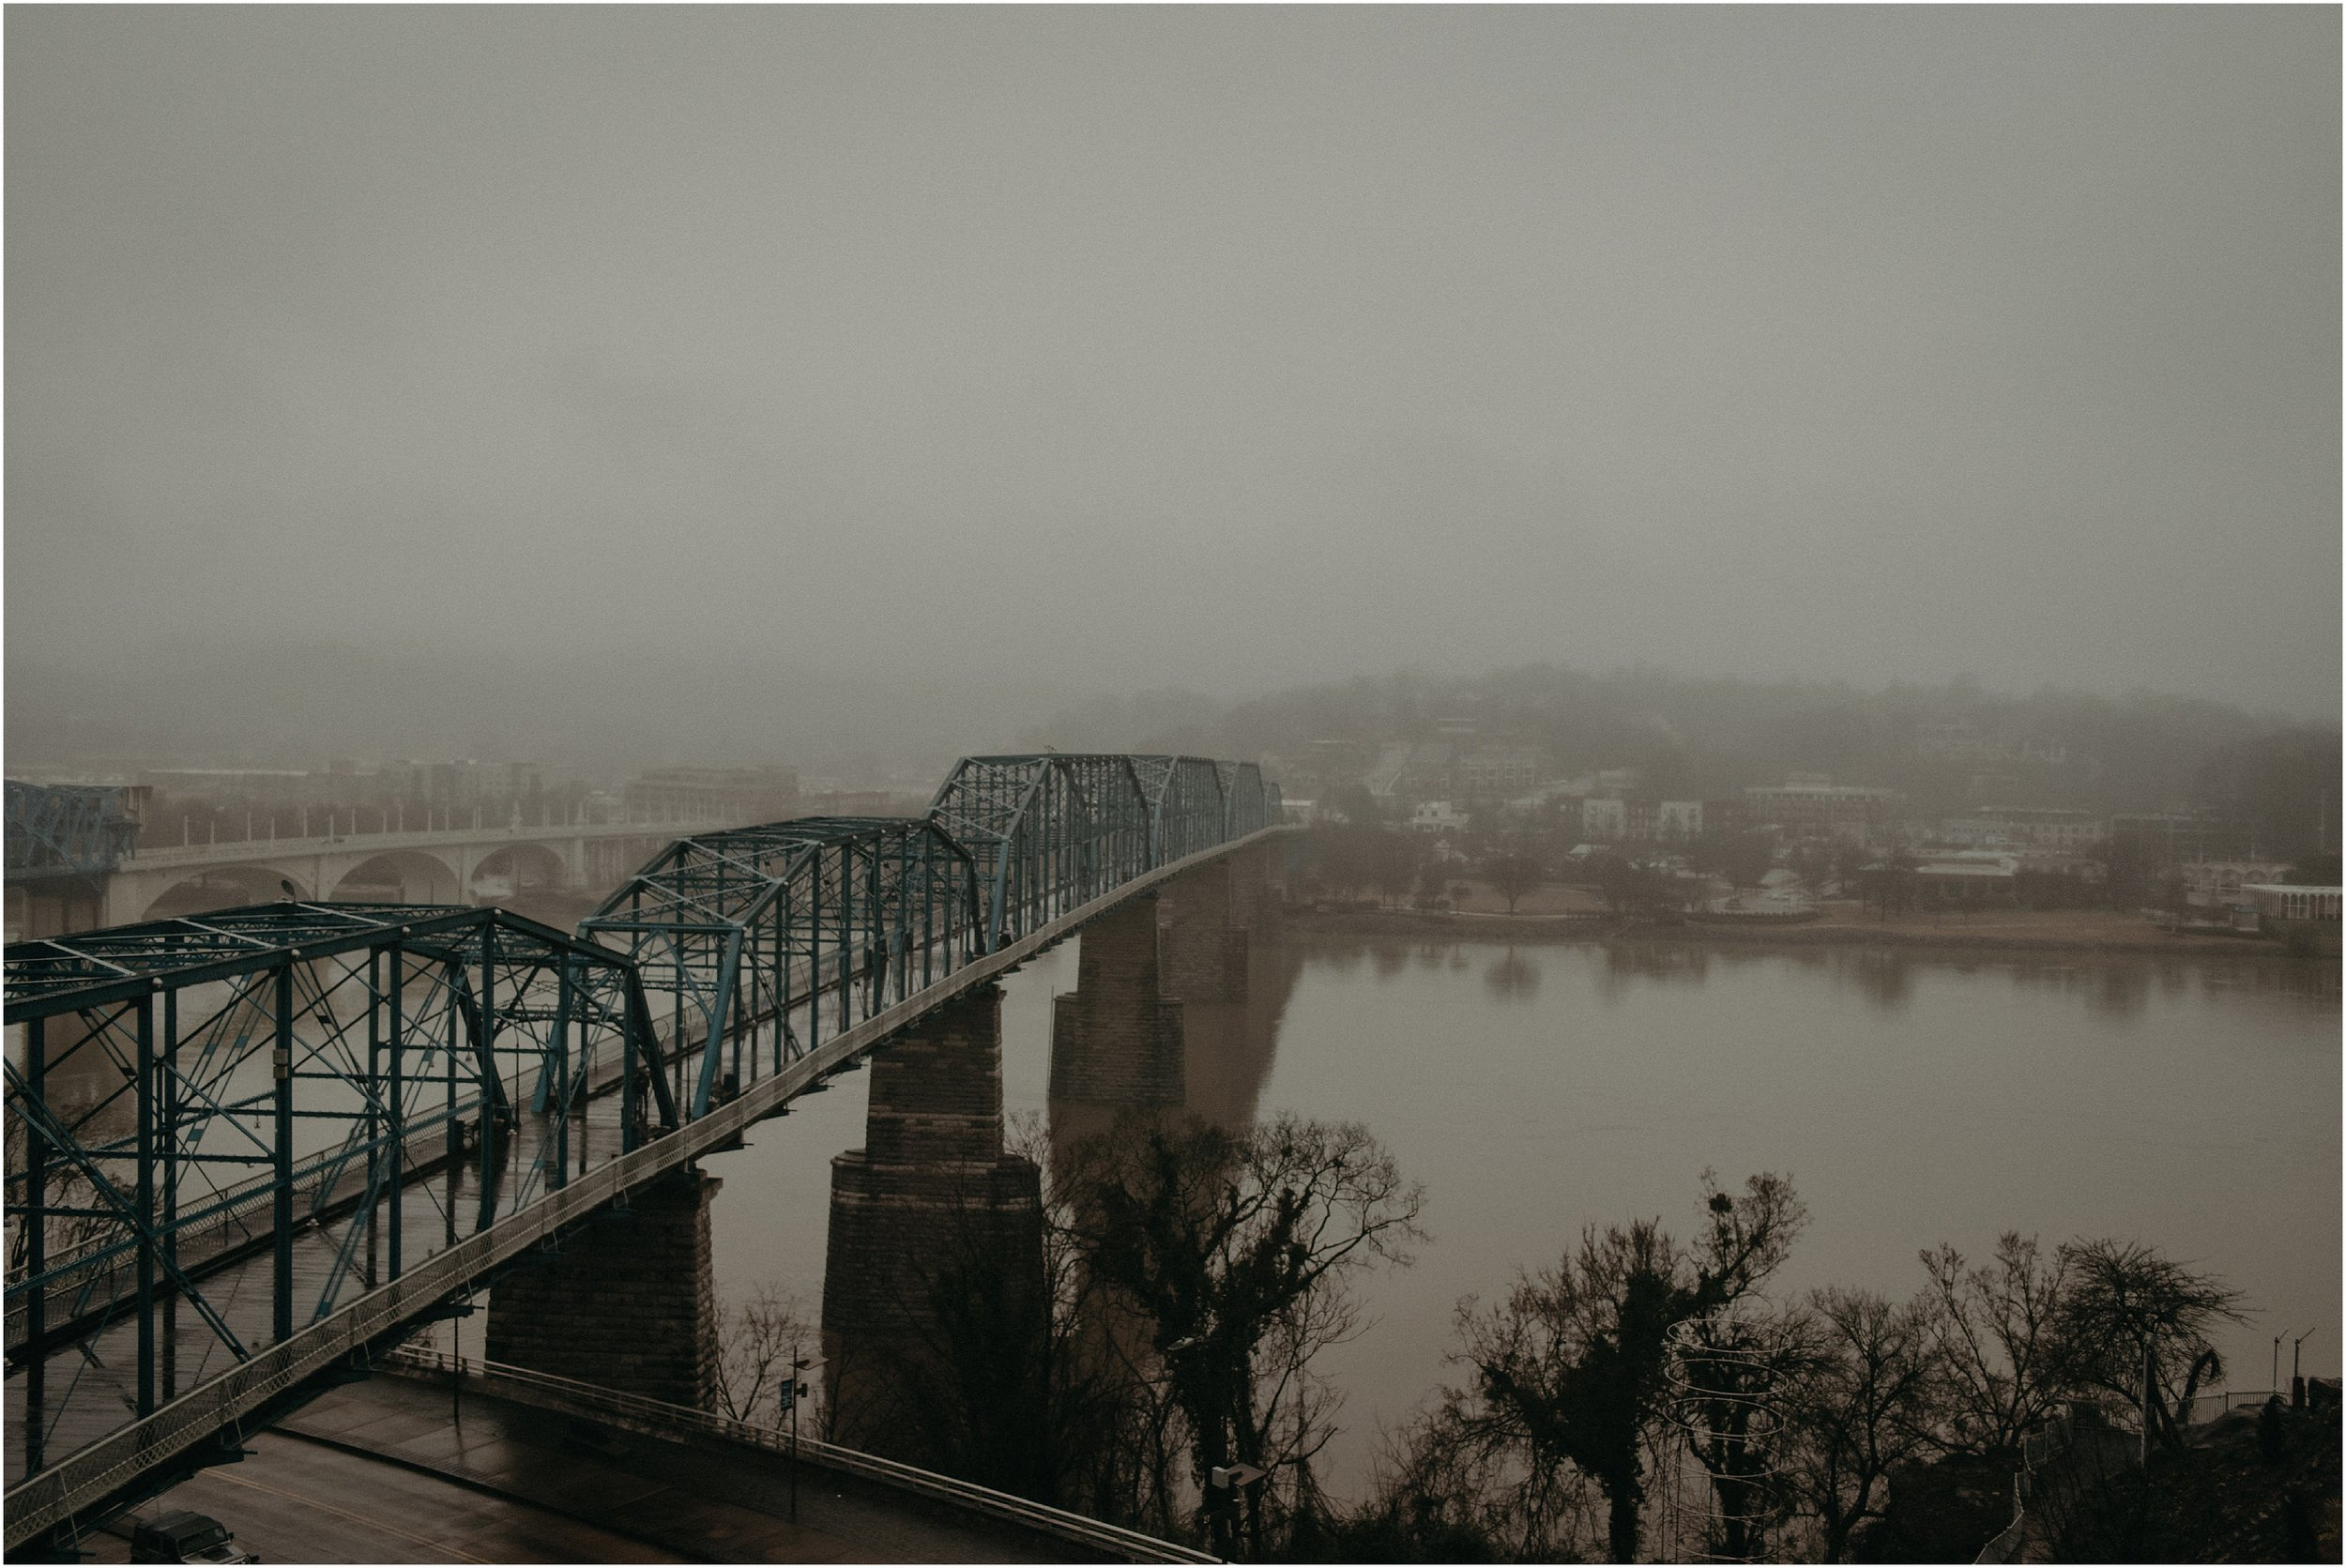 A rainy and foggy wedding in Chattanooga, Tennessee